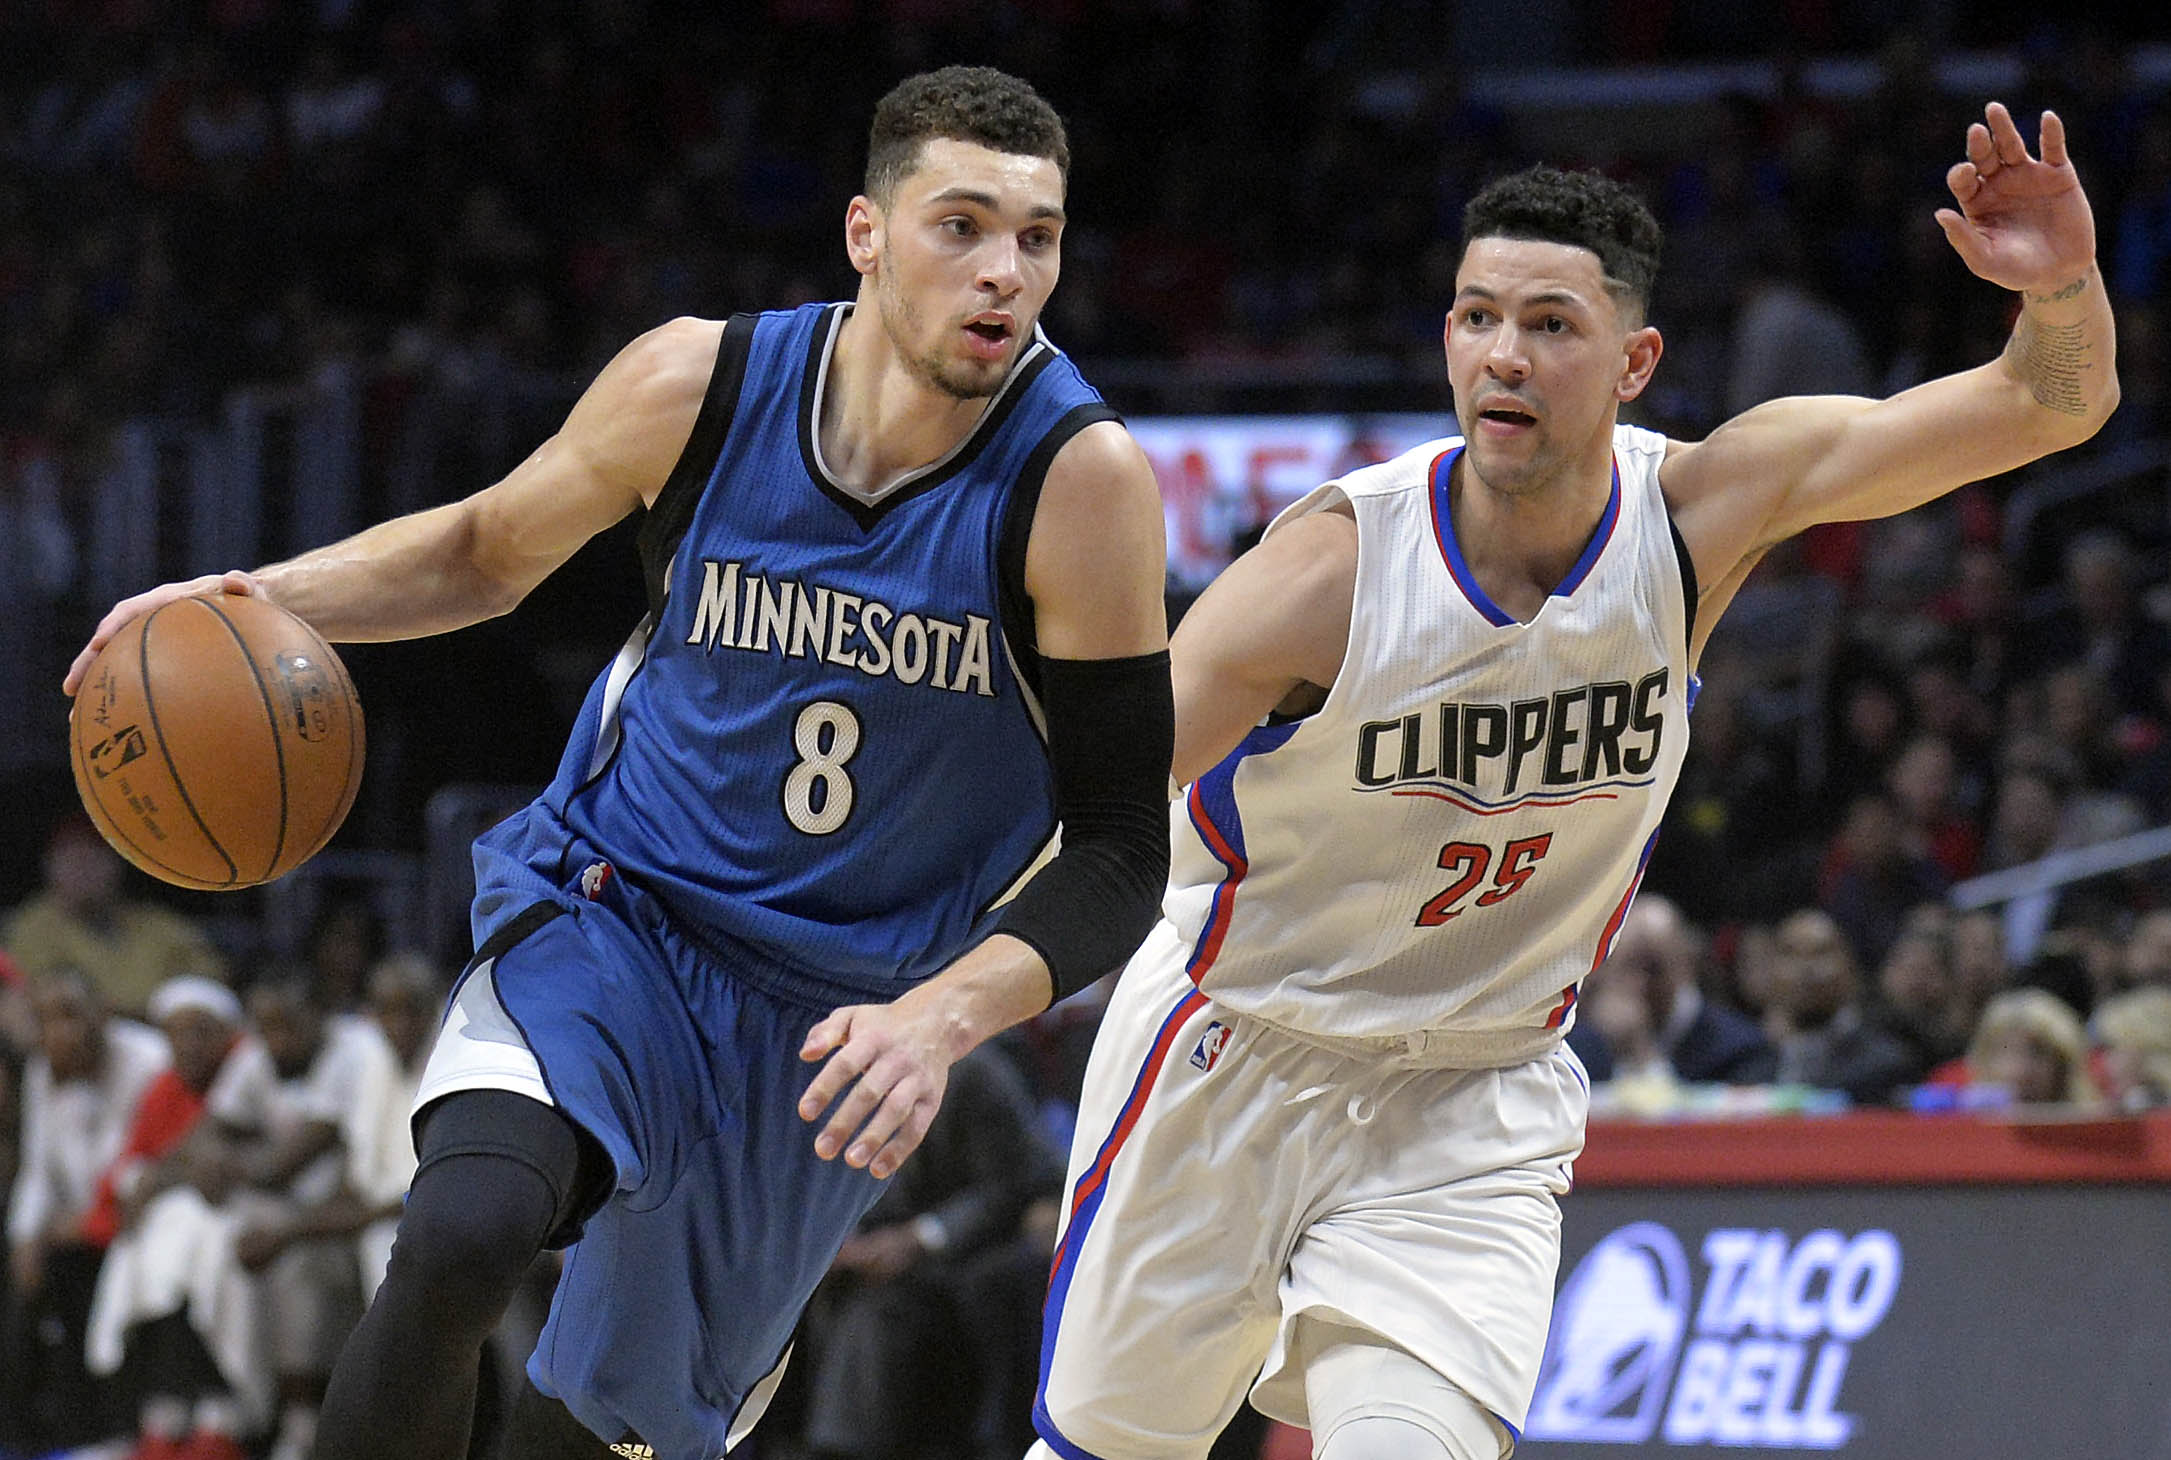 9822754-nba-minnesota-timberwolves-at-los-angeles-clippers